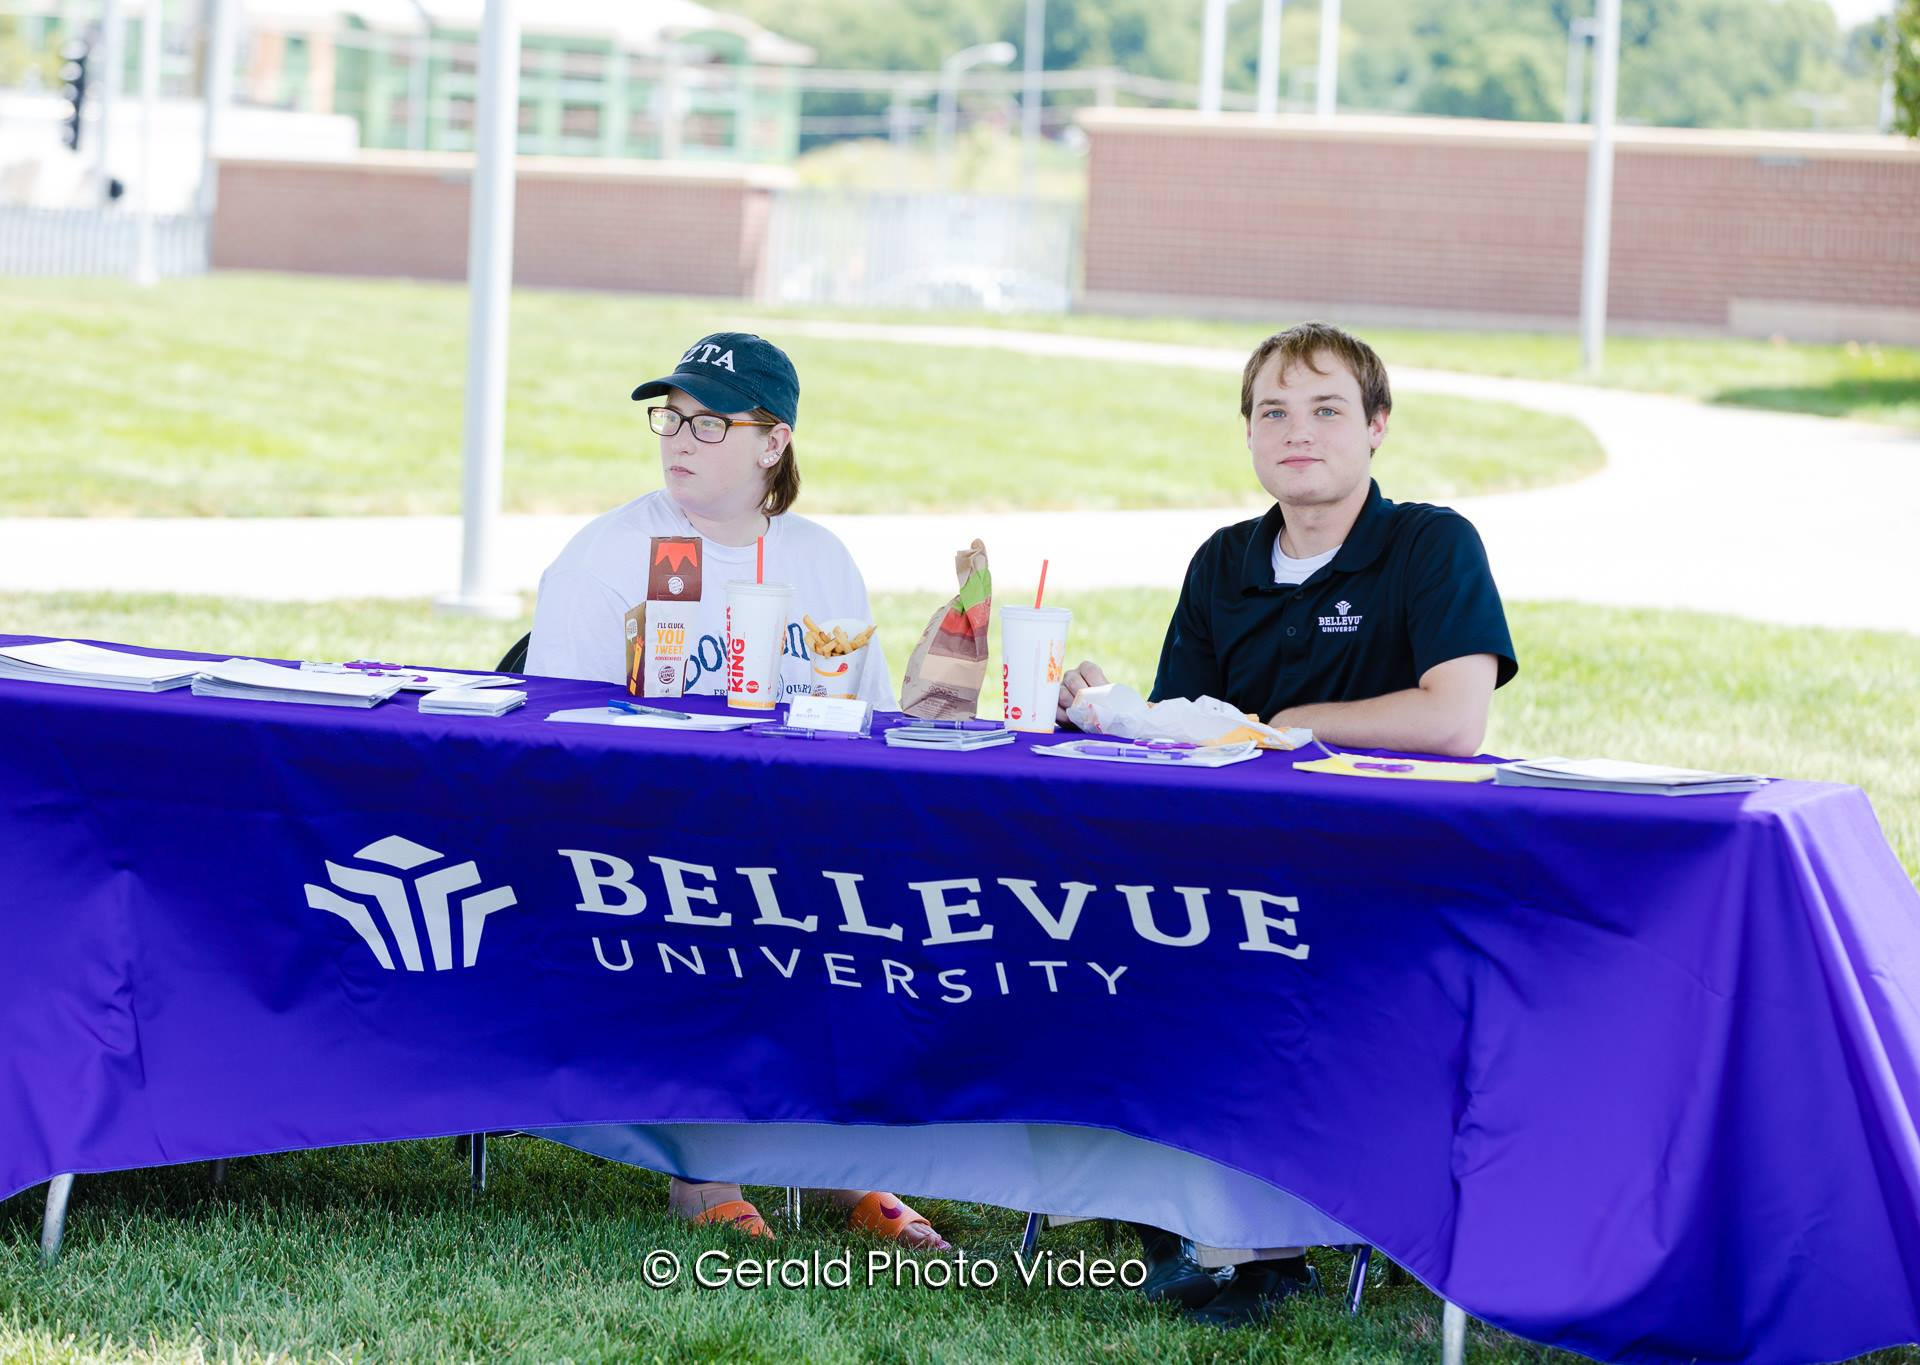 Bellevue University's Table